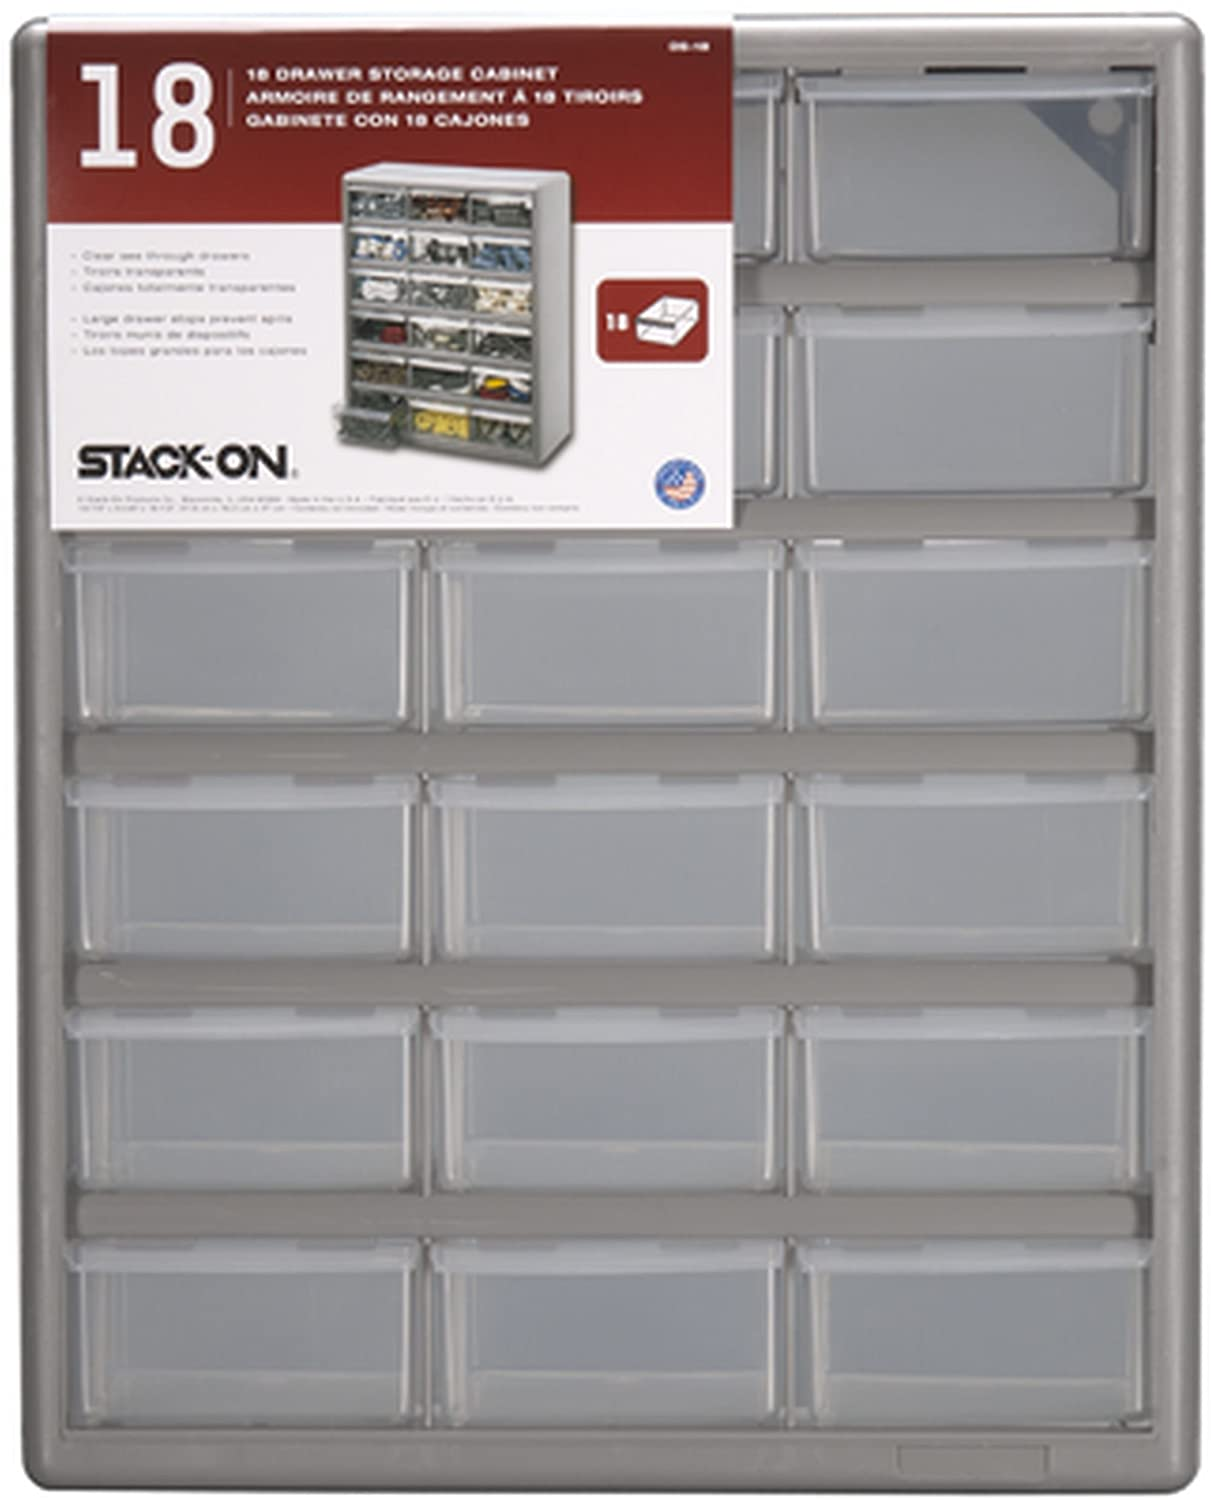 18 Storage Cabinet Amazoncom Stack On Ds 18 18 Drawer Storage Cabinet Home Improvement